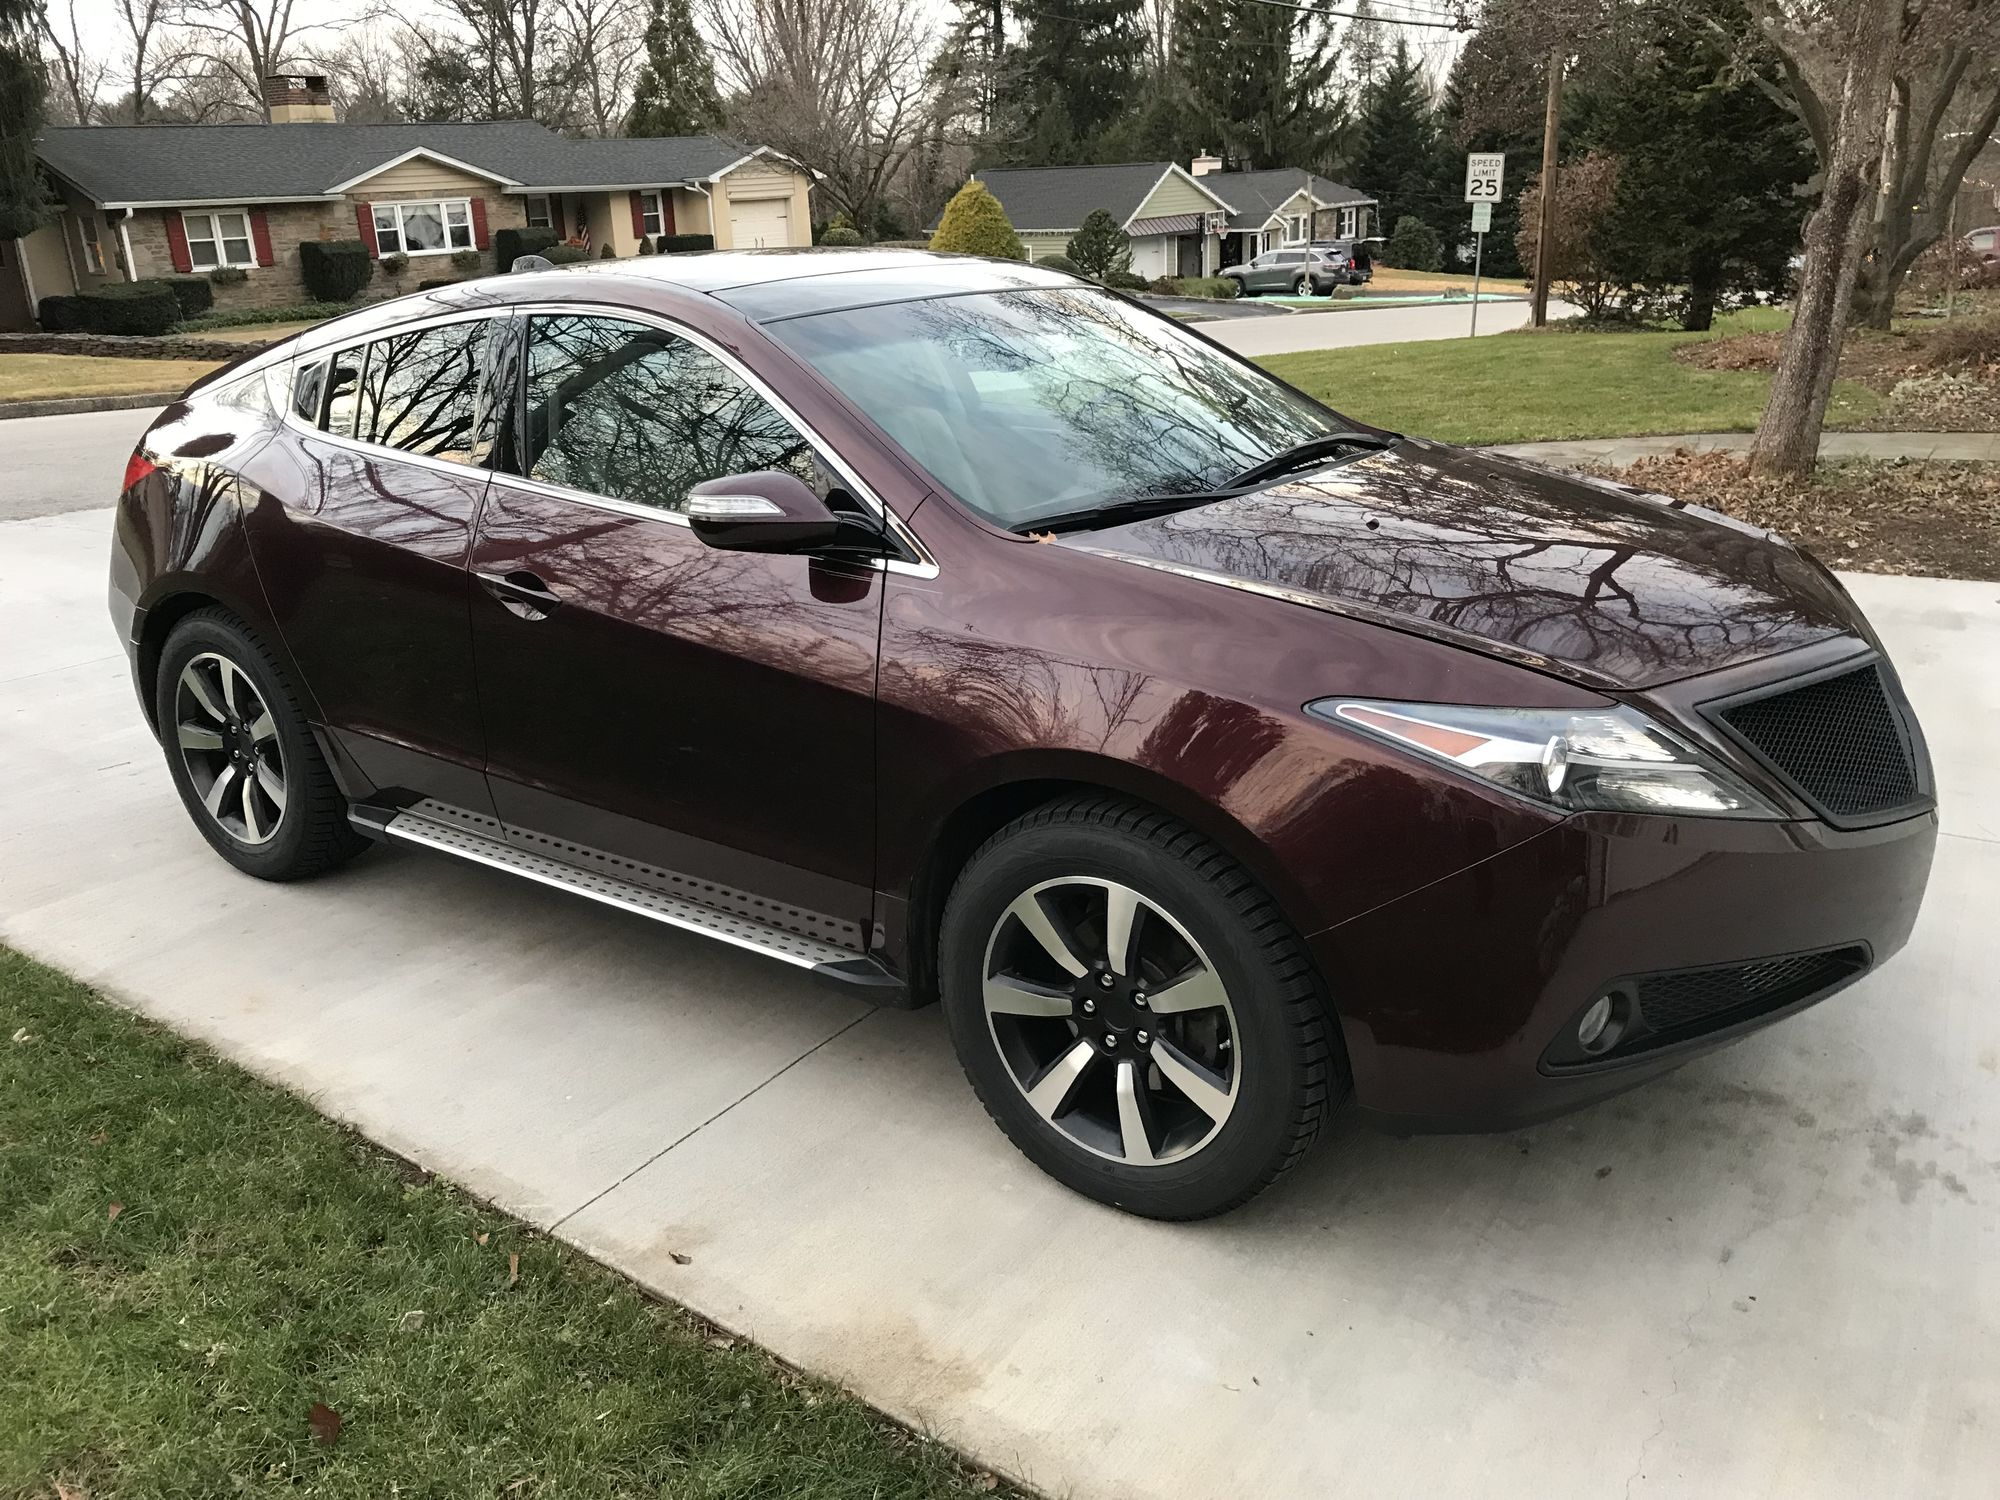 Black Cherry Zdx Mods Acurazine Acura Enthusiast Community Grill Cityconnectapps